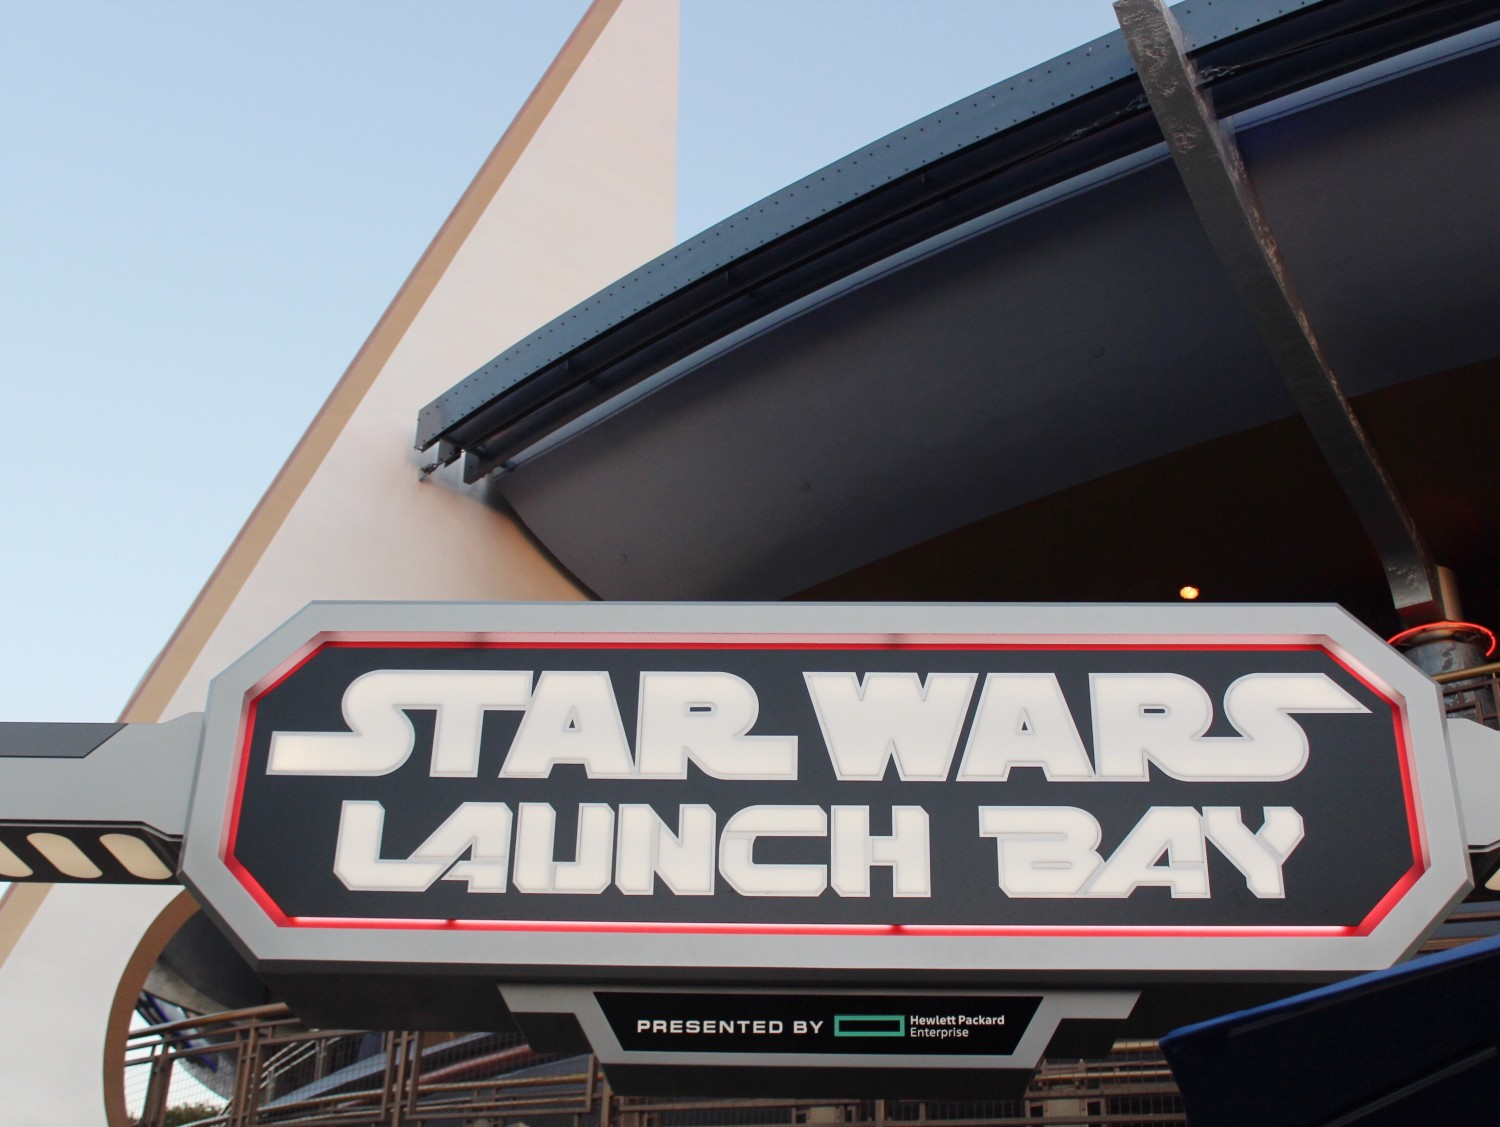 Disneyland Star Wars Launch Bay